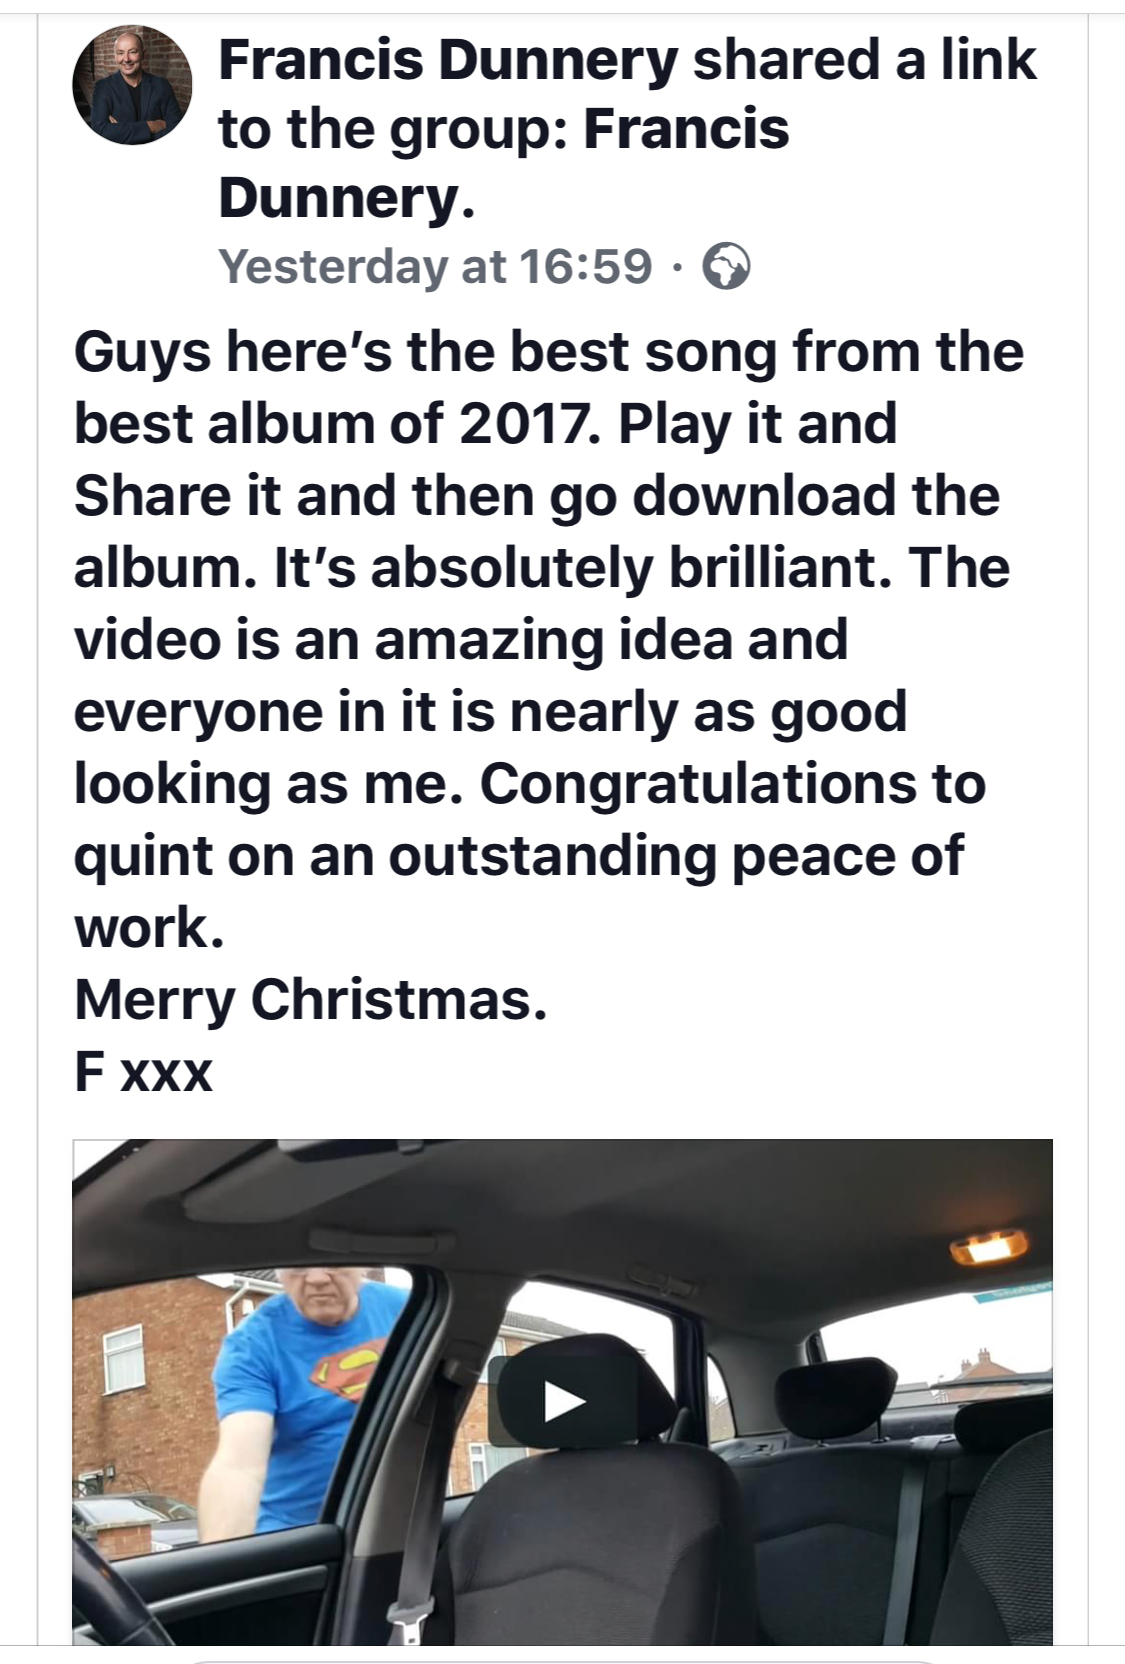 Fantastic review of the new video for Sarah by Francis Dunnery